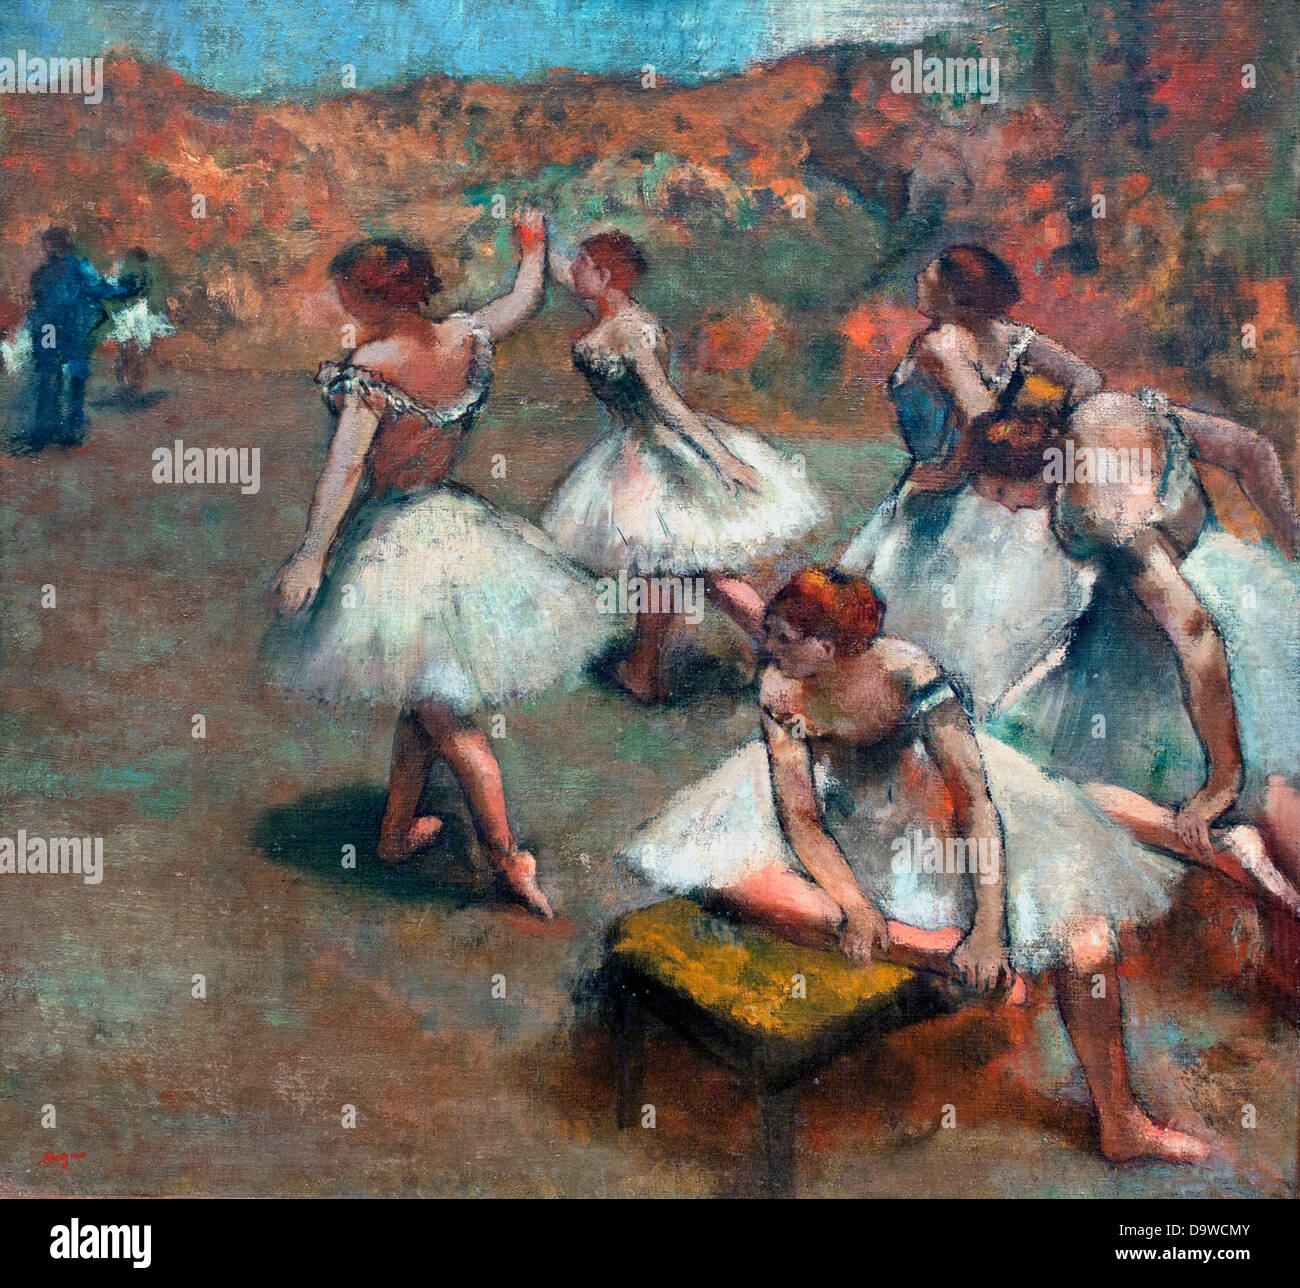 Dancers on stage - Danseuses sur la scene 1889 Edgar Degas 1834-1917 France - Stock Image